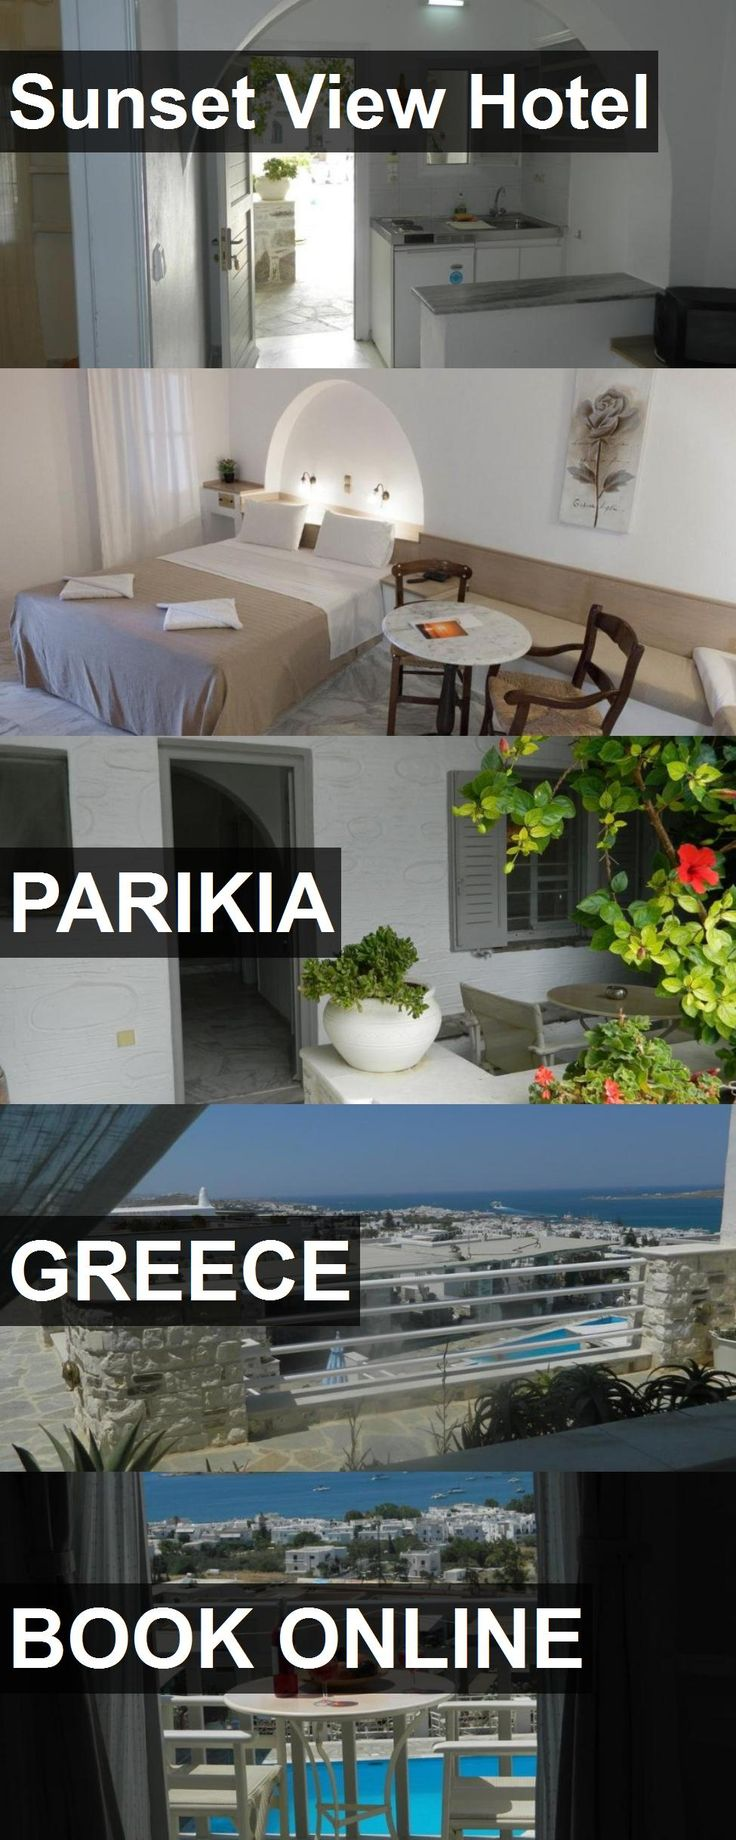 Hotel Sunset View Hotel in Parikia, Greece. For more information, photos, reviews and best prices please follow the link. #Greece #Parikia #SunsetViewHotel #hotel #travel #vacation